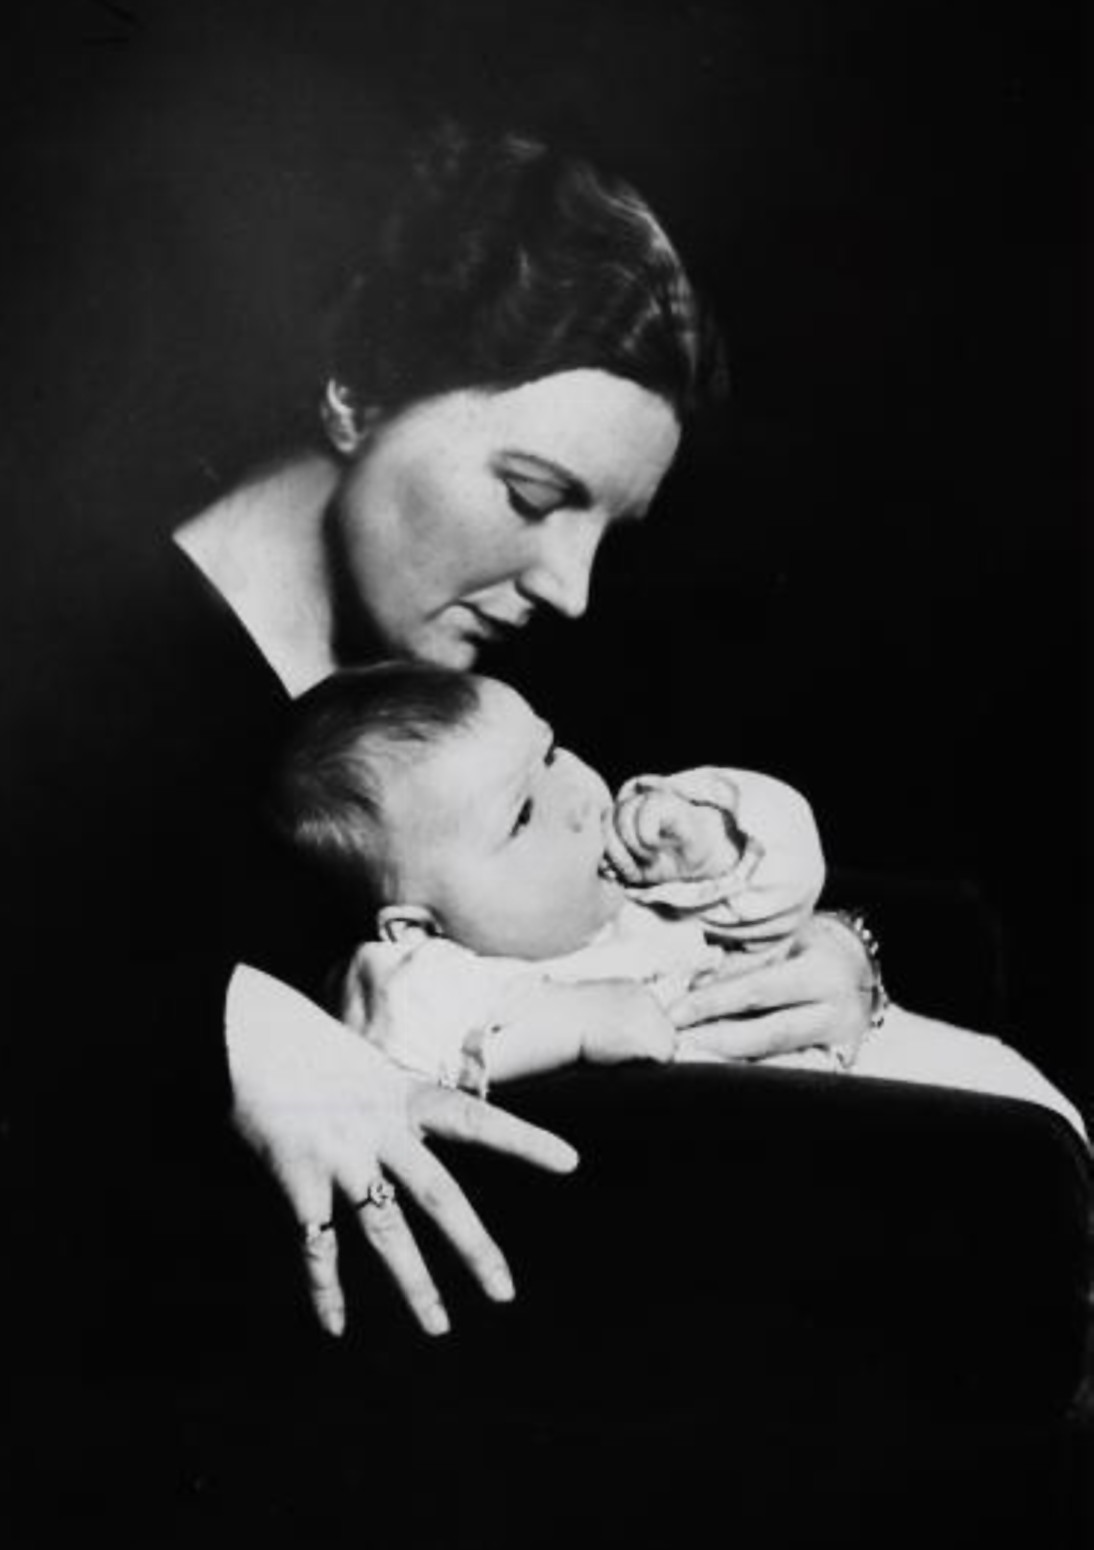 Newborn princess Beatrix with her mother, crown princess Juliana, The Netherlnads, 1938, photoedited